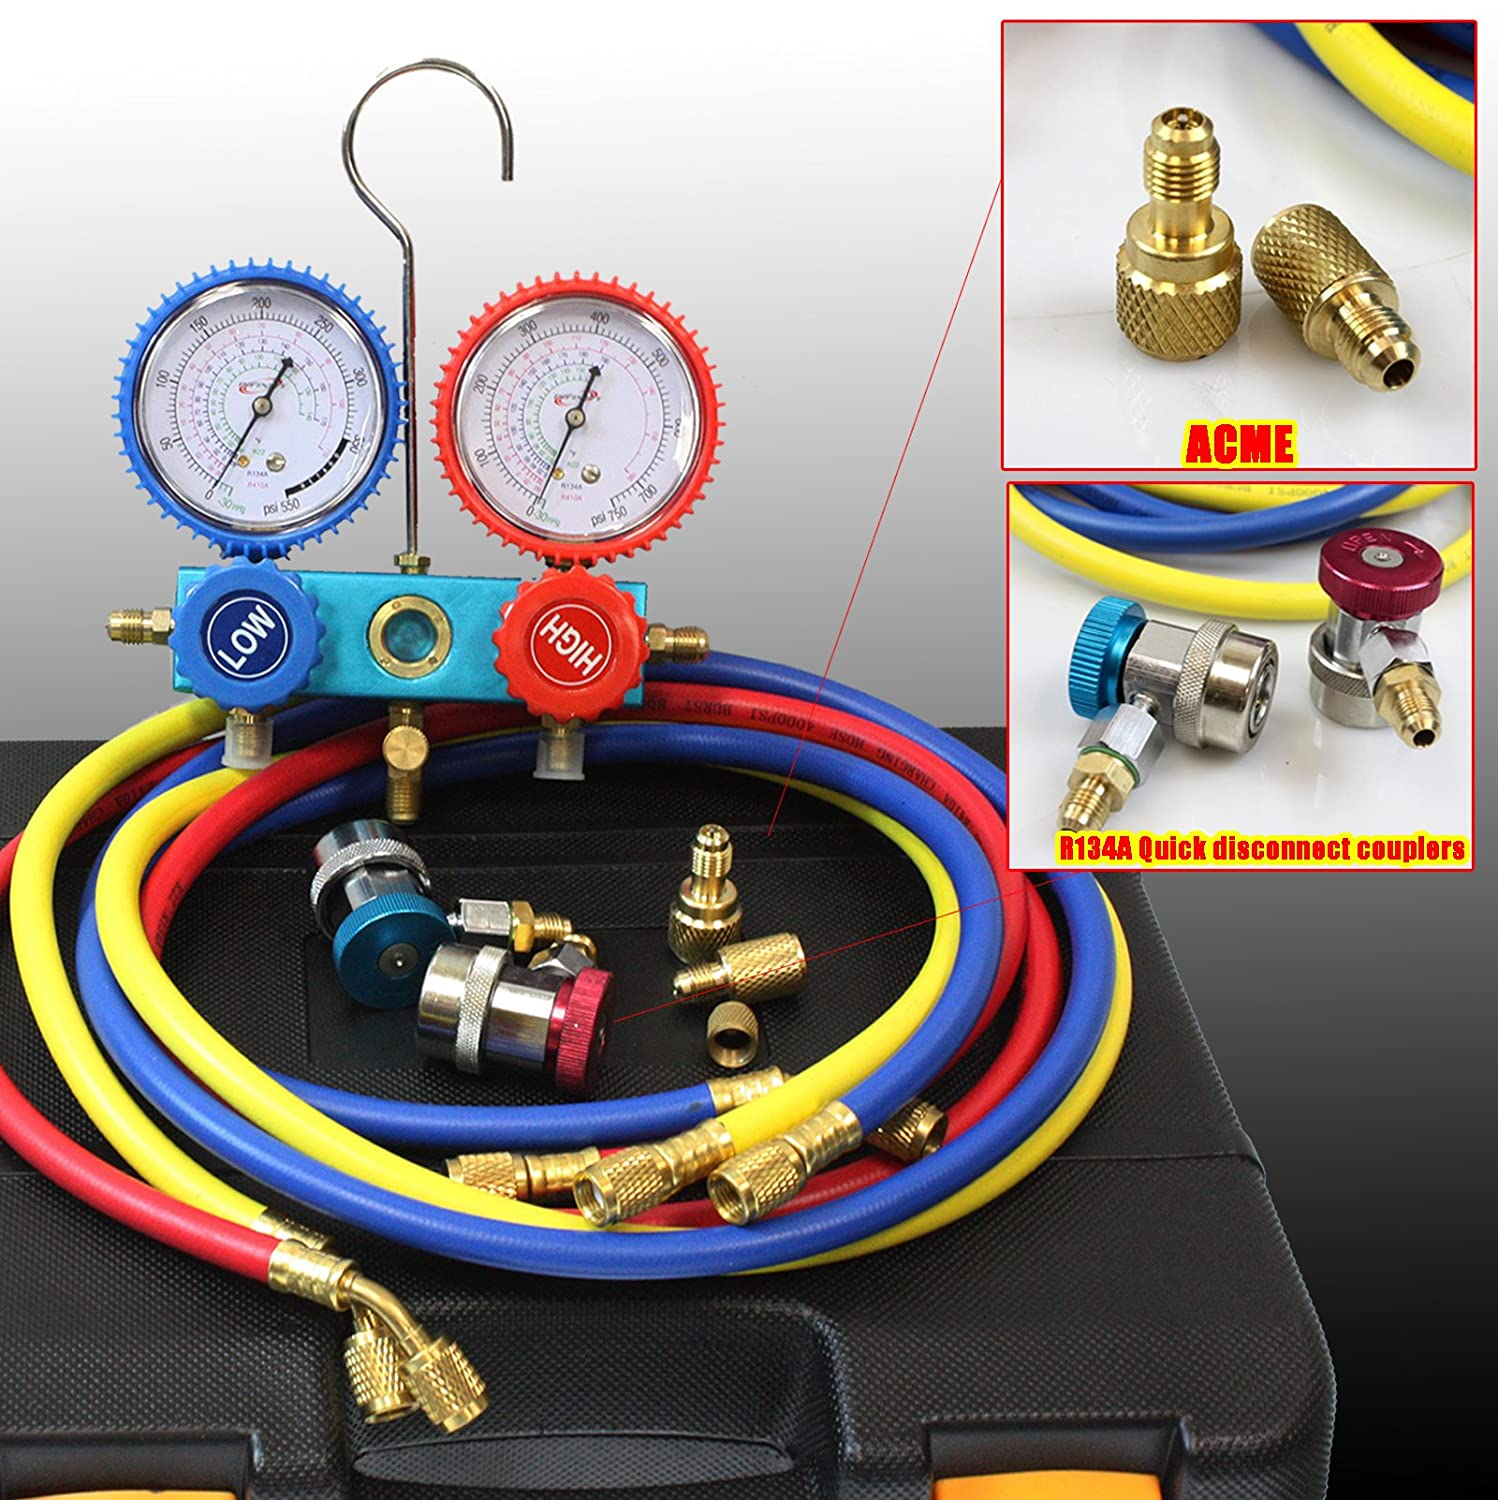 Hvac Ac Manifold Gauges R410a R134a W 3 Charge Hoses Quick Adapter Drawing Book 2 Acme